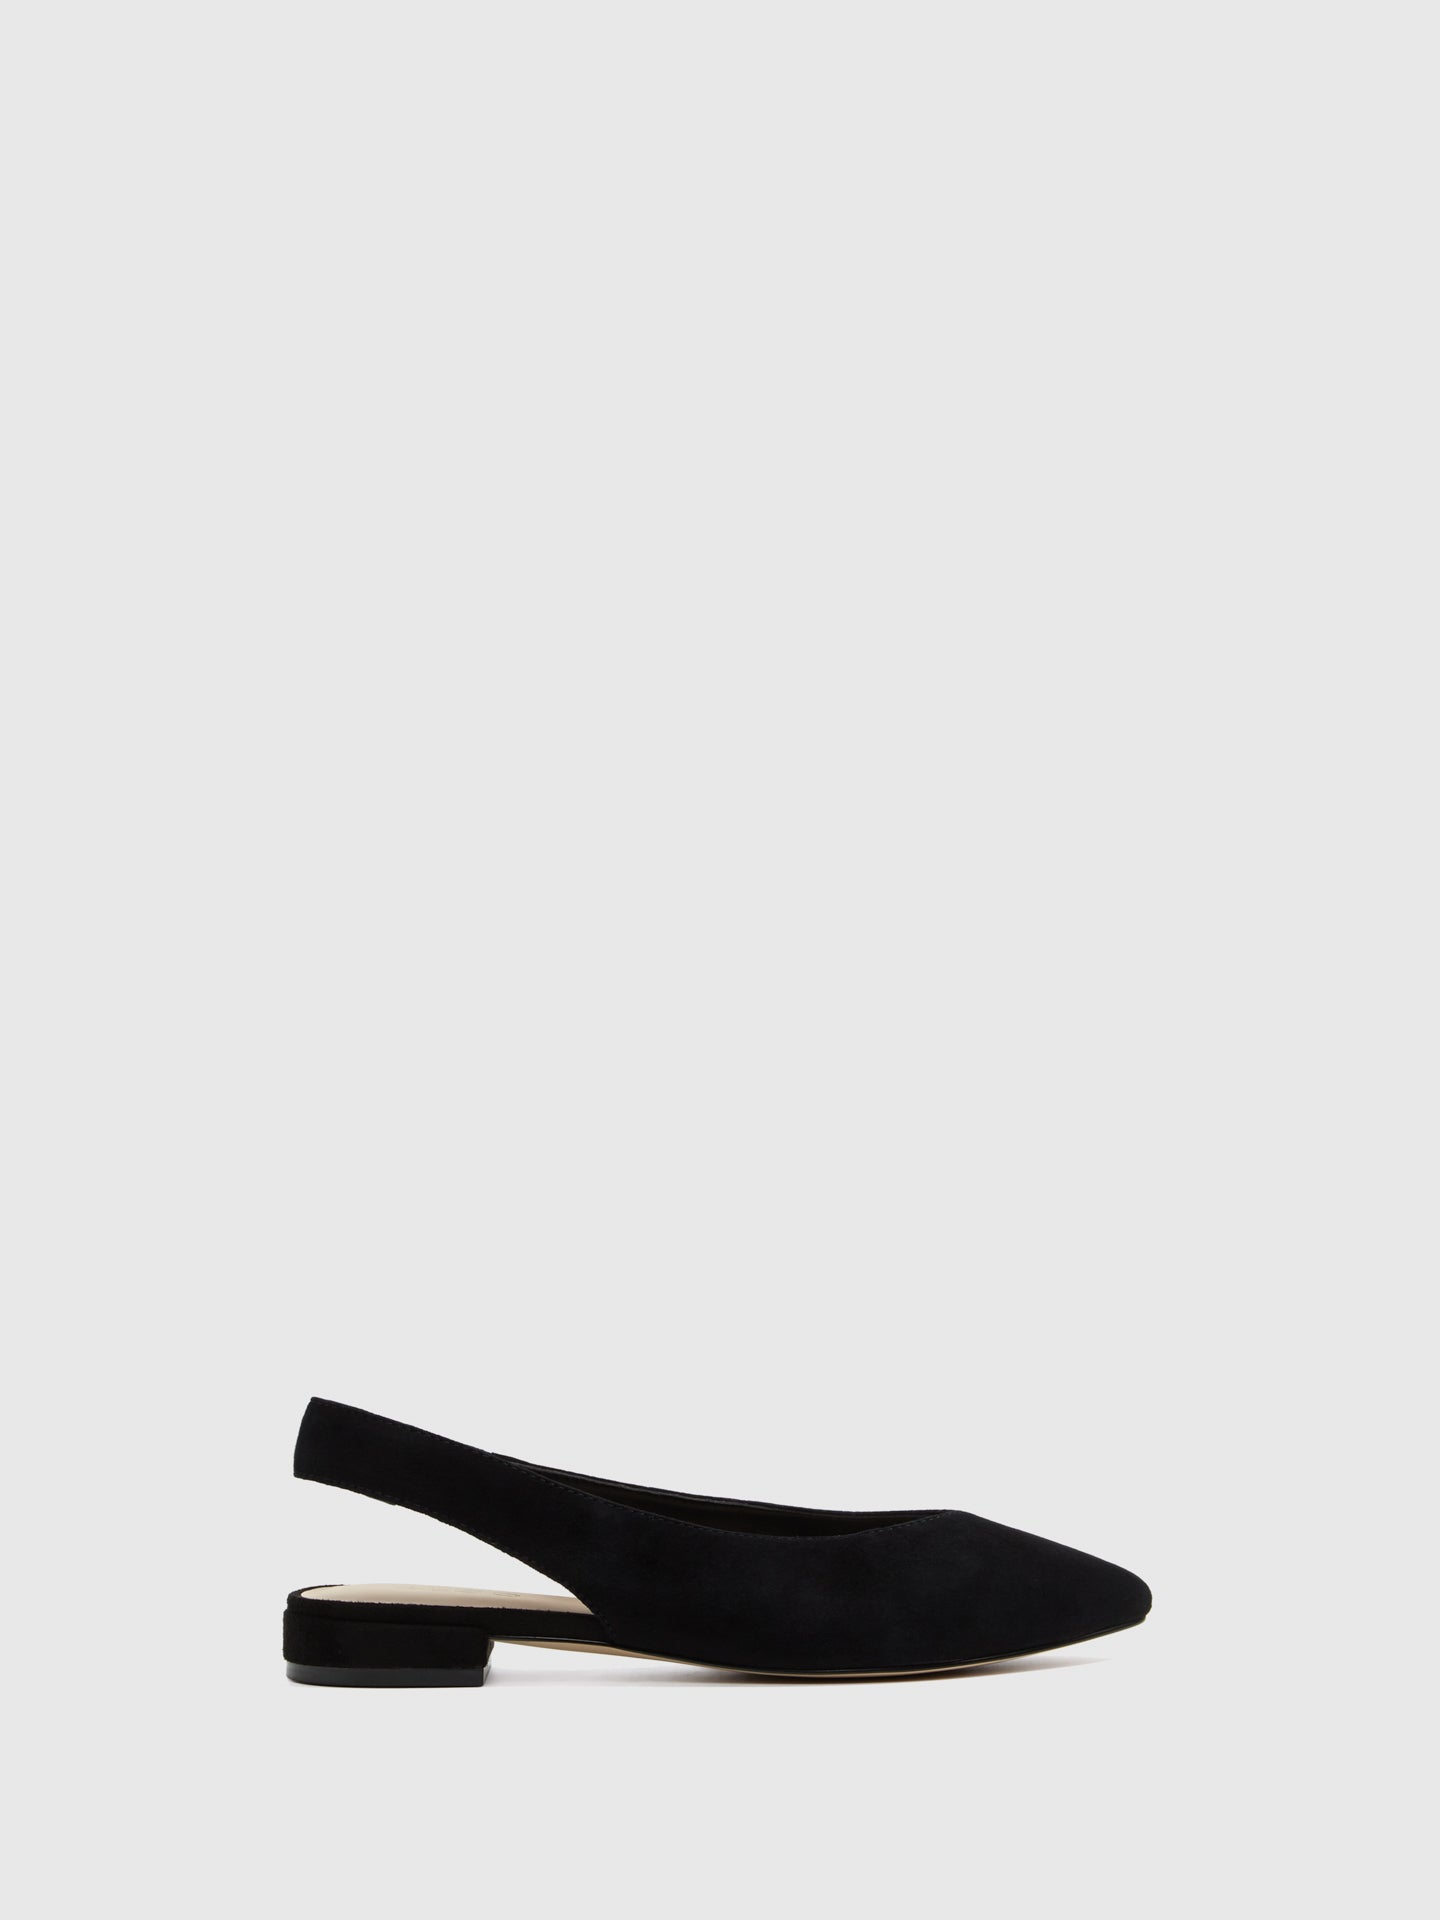 Aldo Black Sling-Back Ballerinas